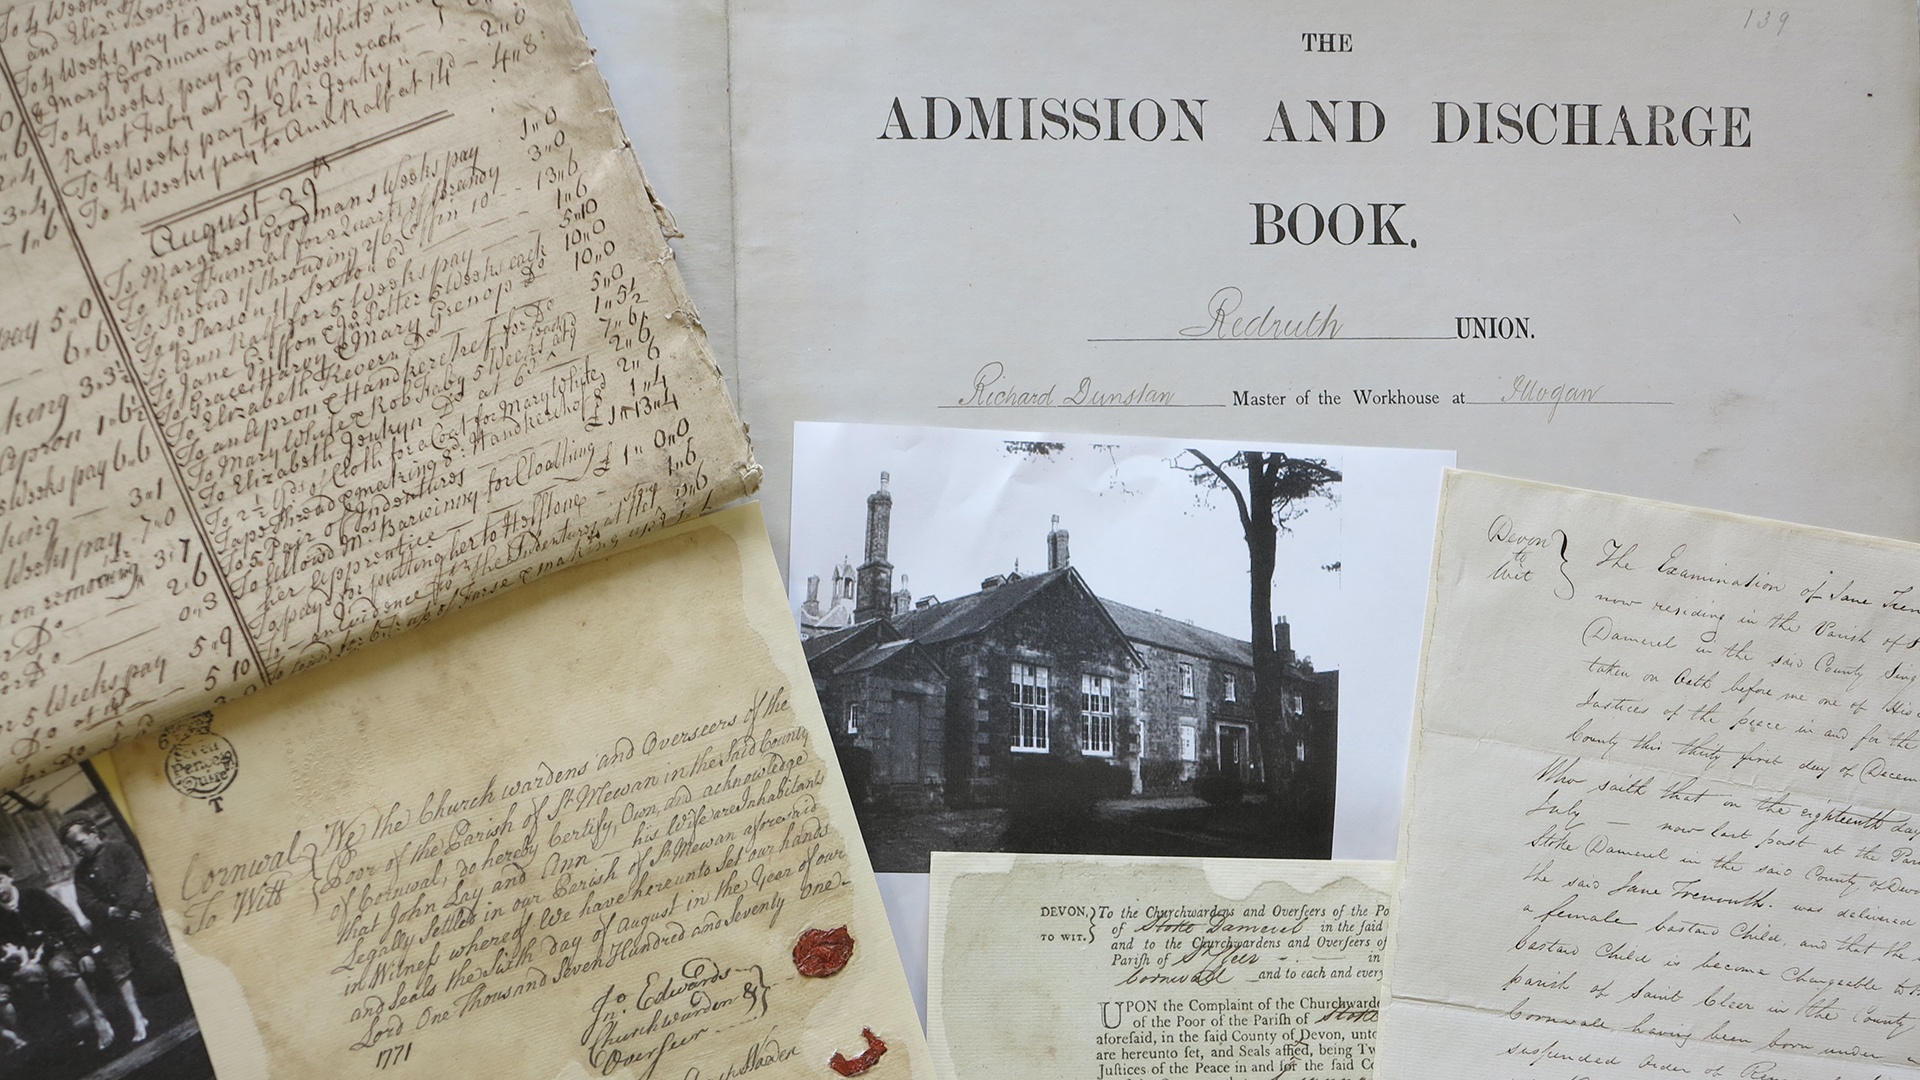 Colour photograph of a montage of documents including handwritten, printed and a photo.